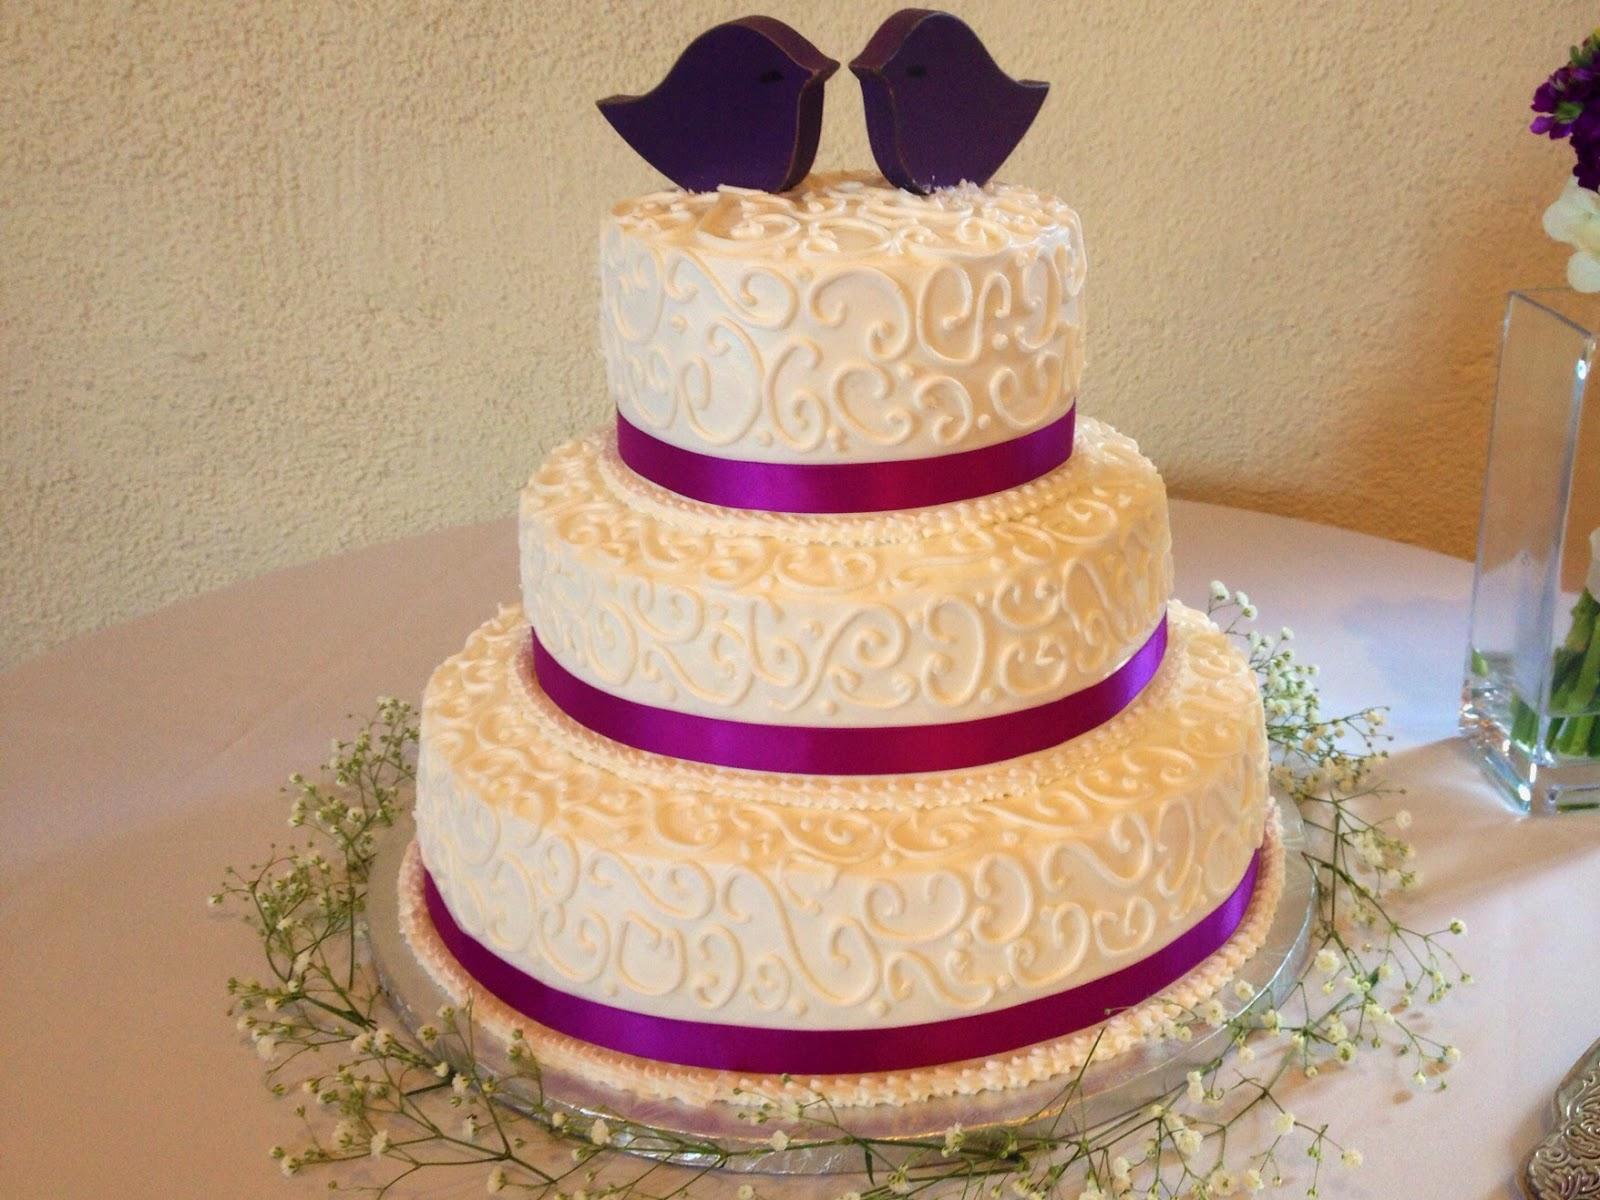 Catering With Teatime Delicacies At Old Town Hall Fairfax Va Satin Ribbon Wedding Cake